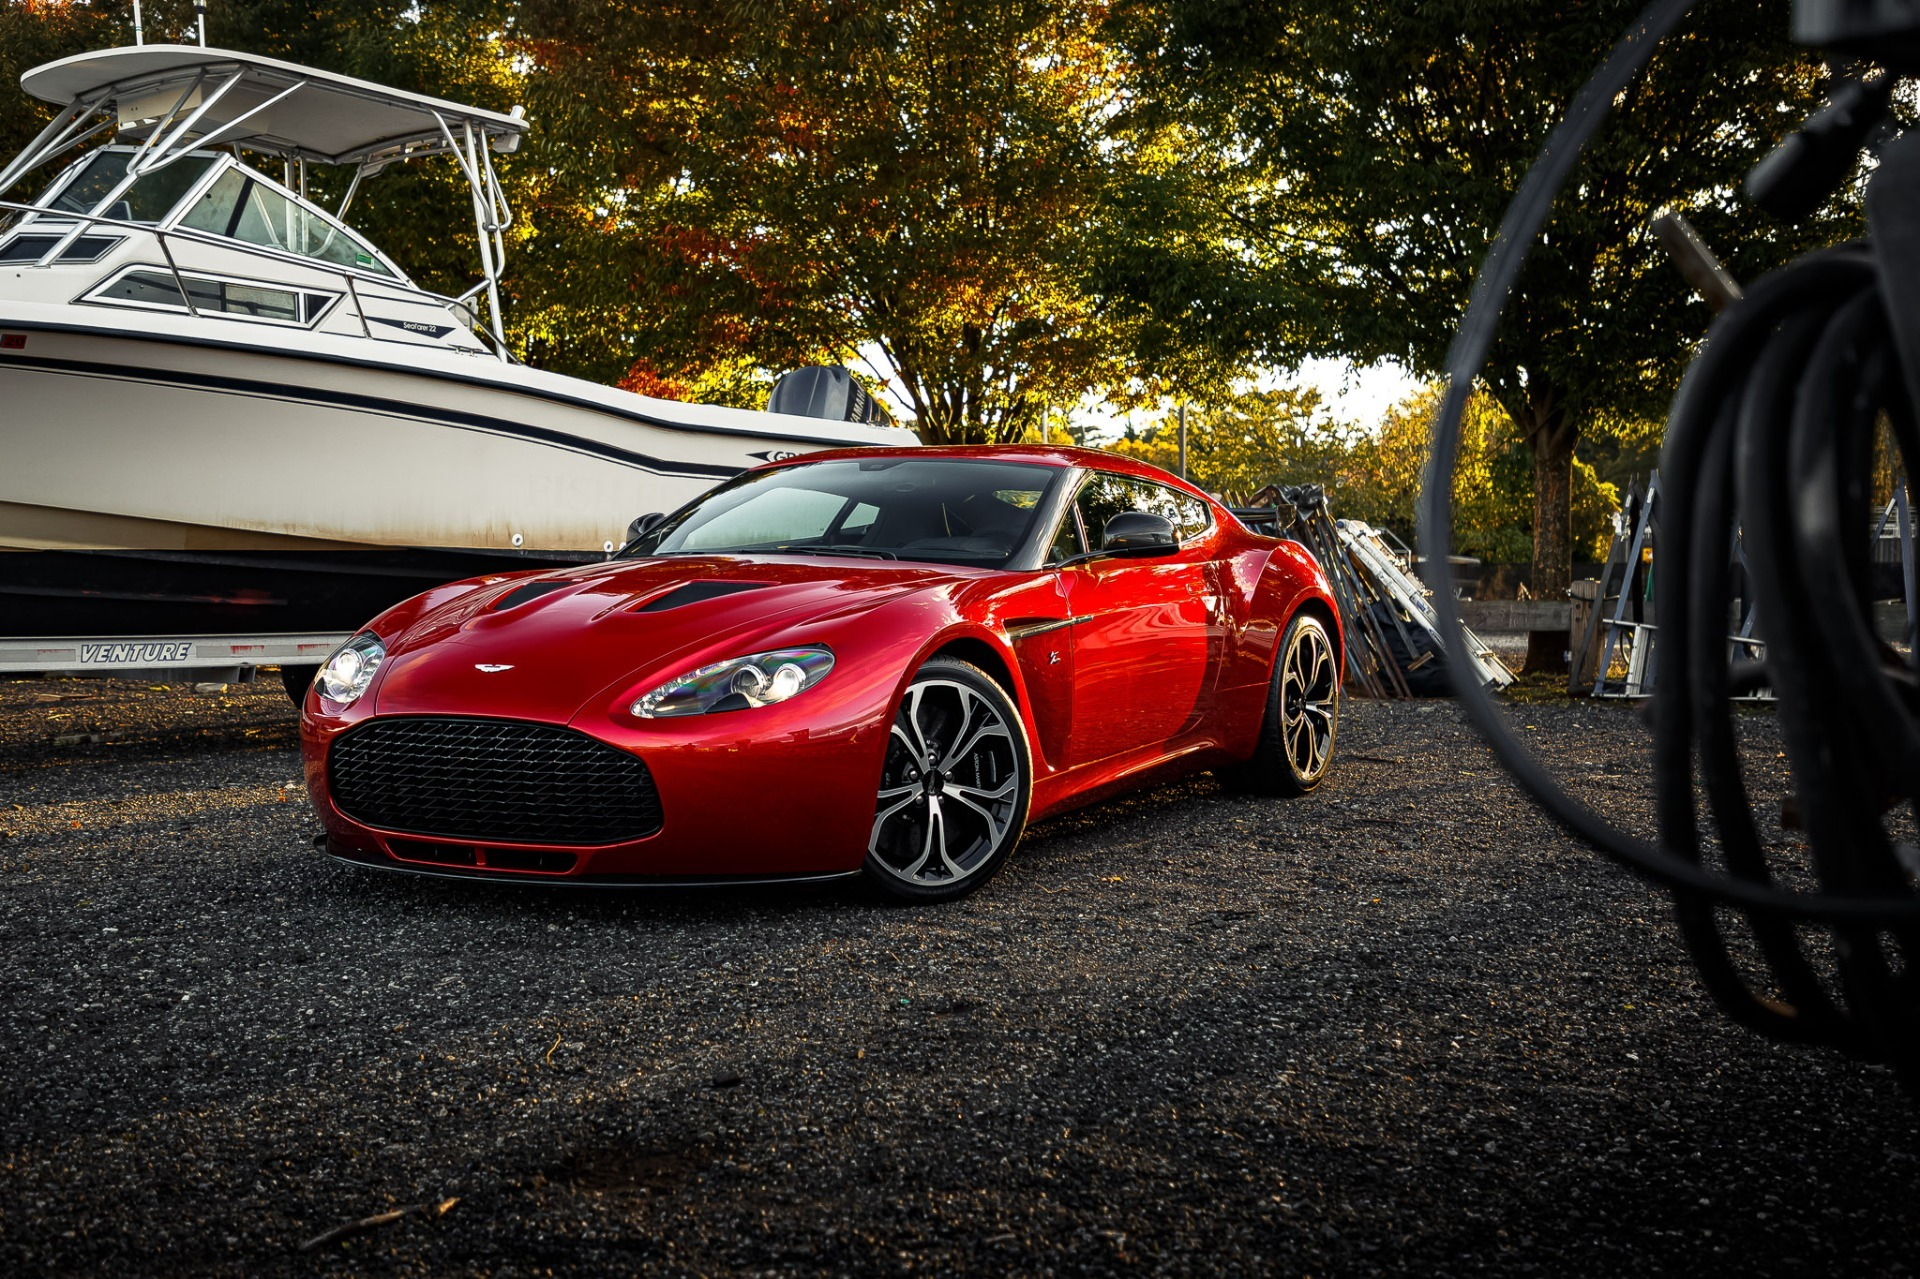 Used 2013 Aston Martin V12 Zagato Coupe For Sale In Greenwich, CT 3181_p30